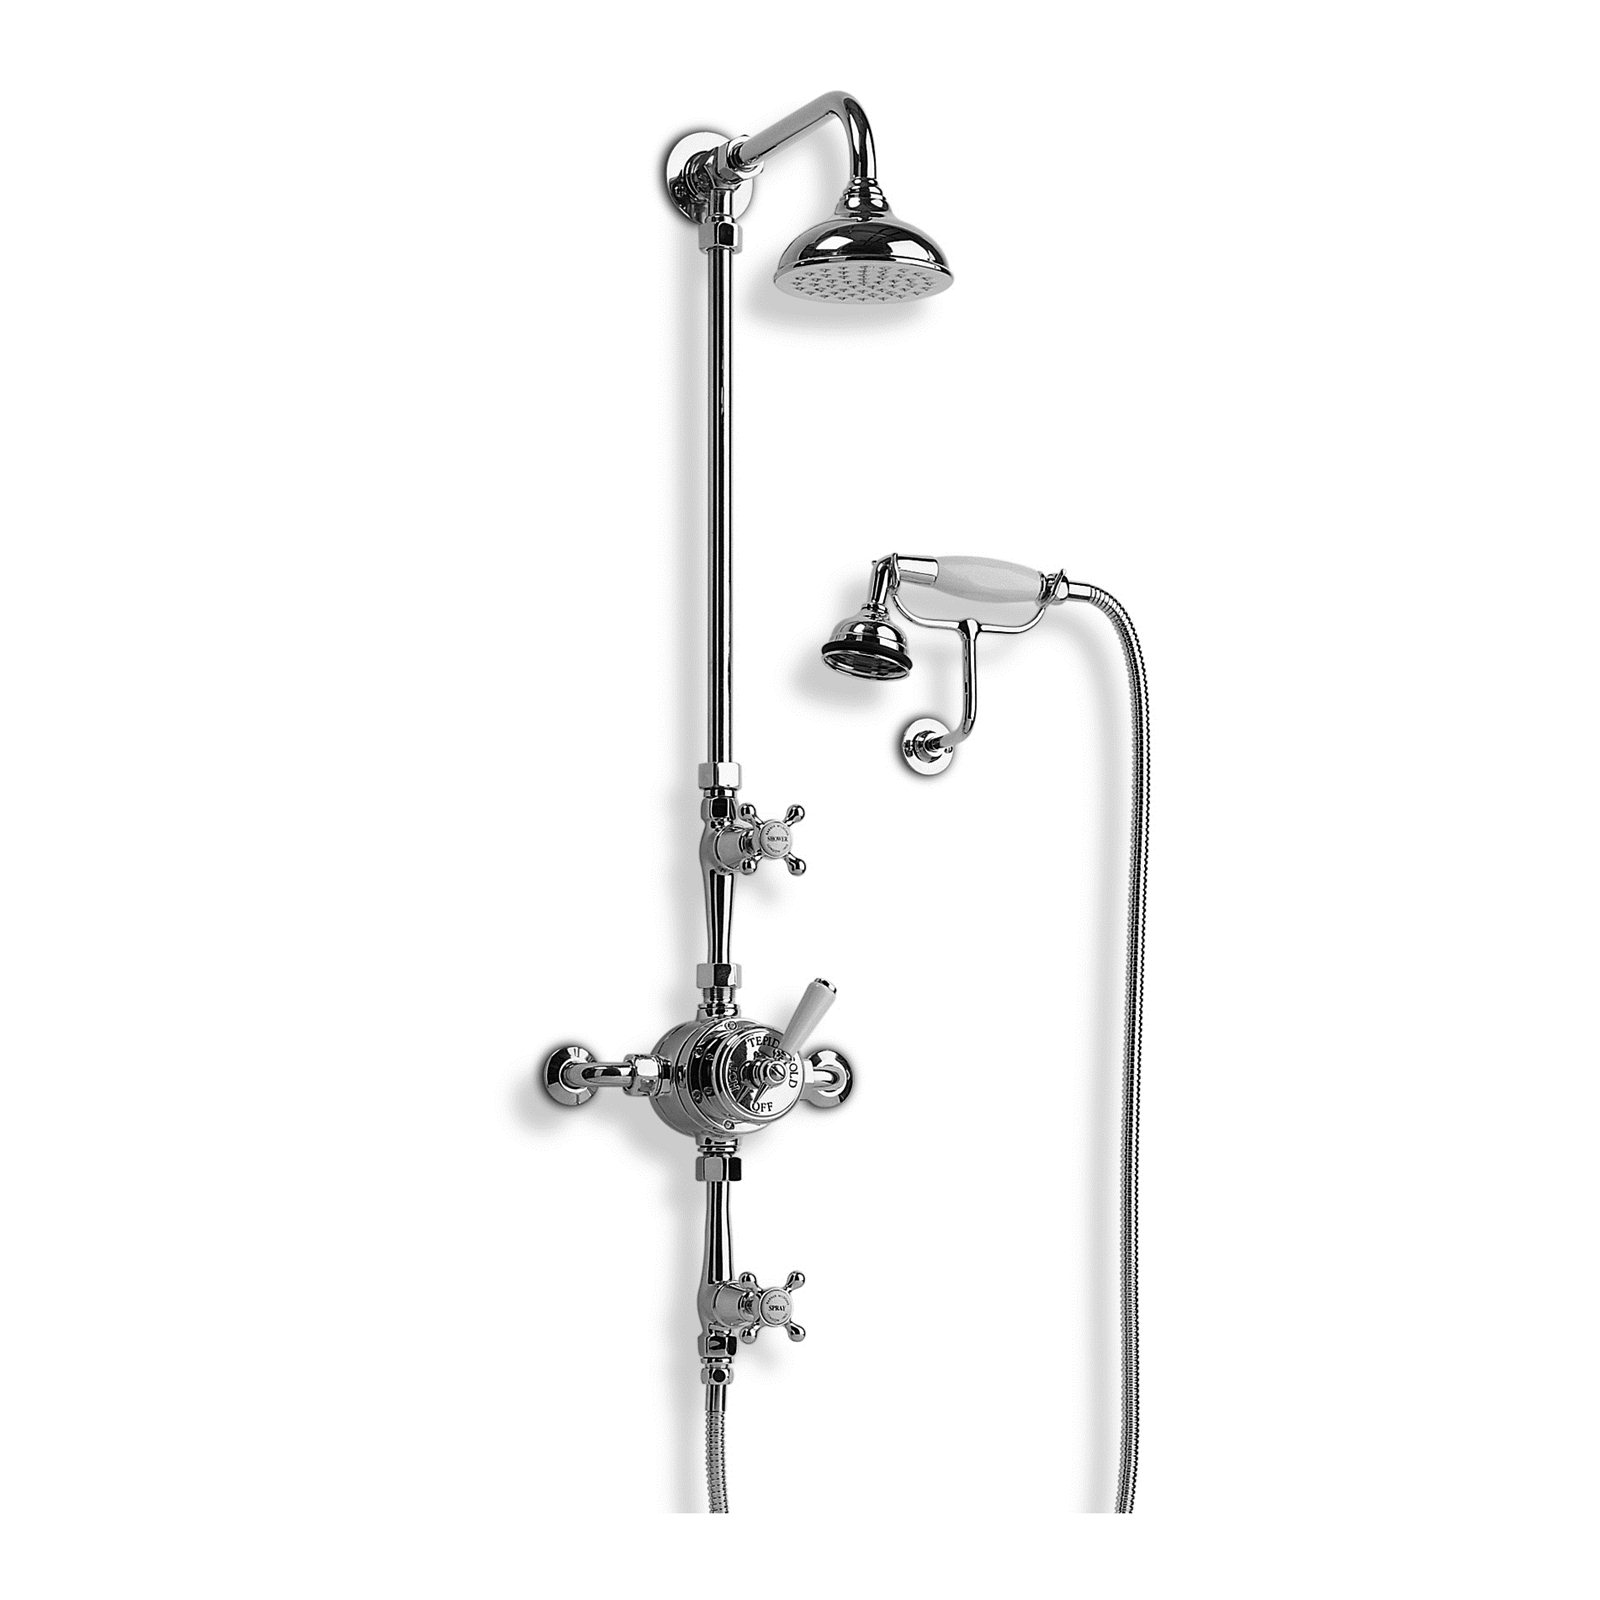 Thermostatic shower mixer with hand shower and overhead arm Image